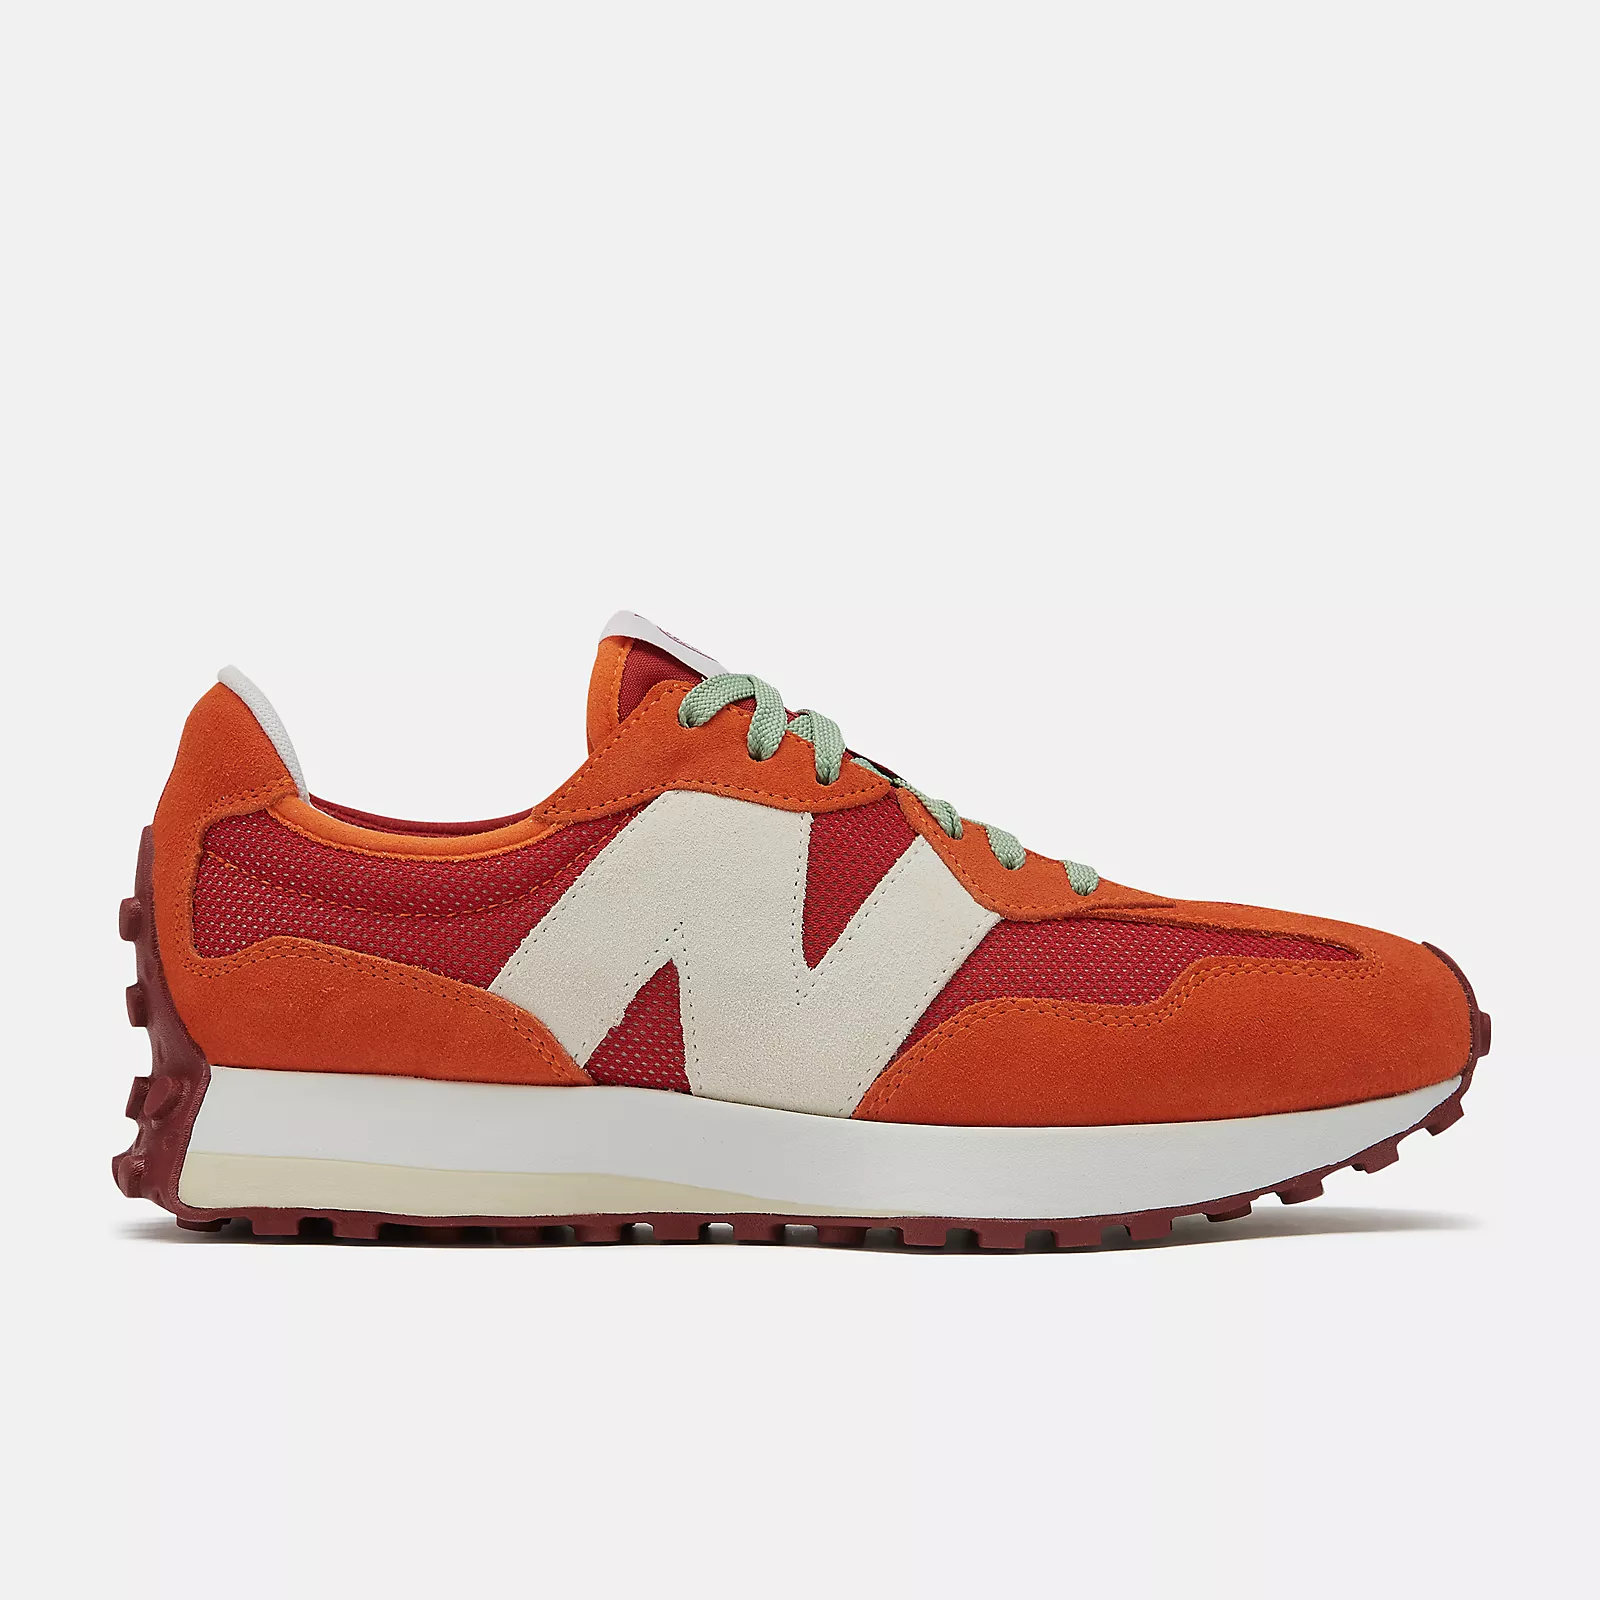 Todd Snyder x New Balance 327 'Ghost Pepper/Velocity Red'